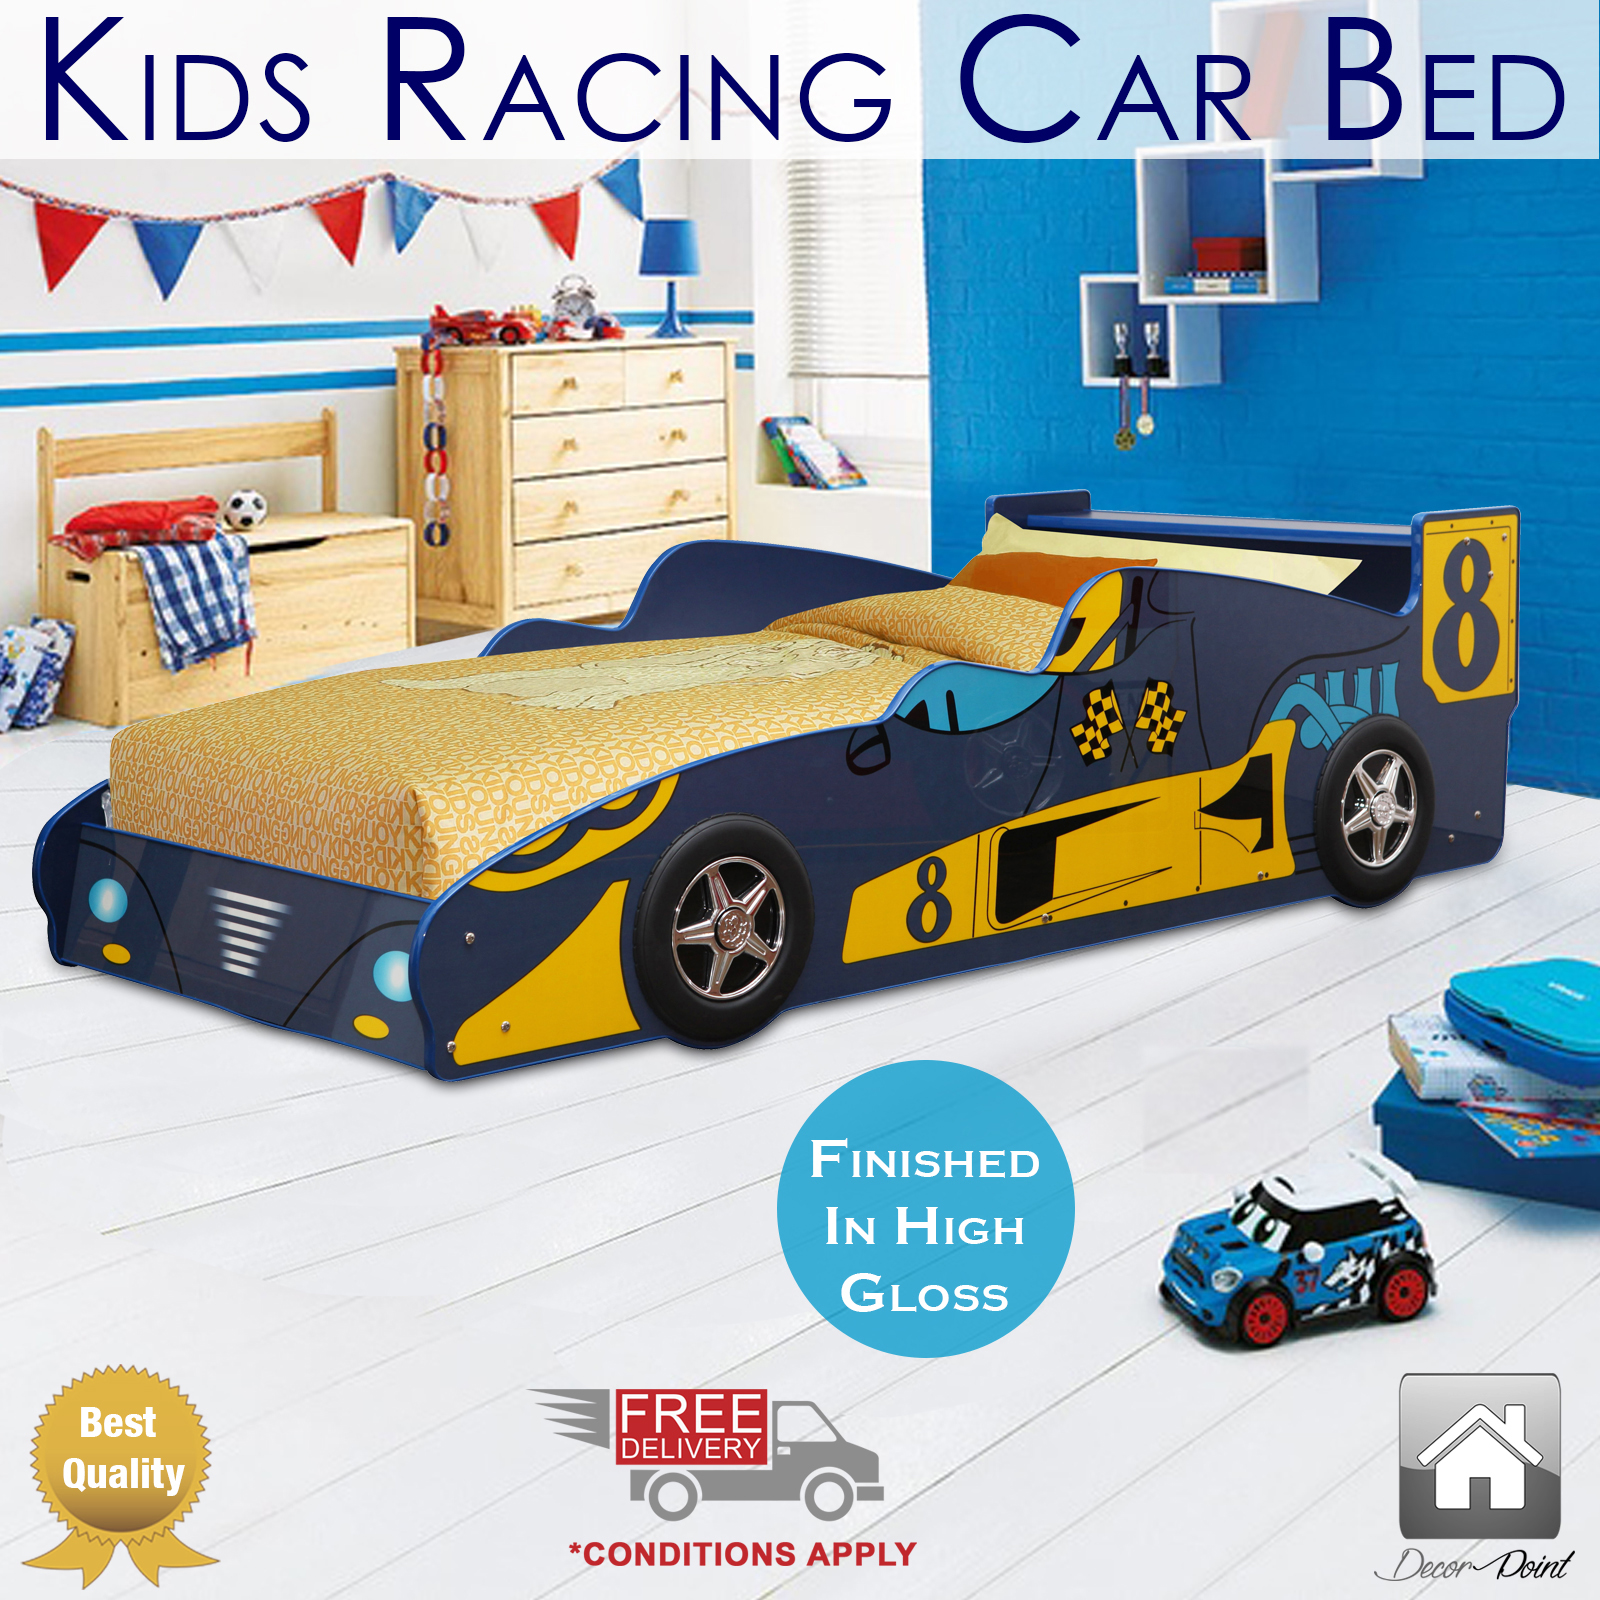 Kids racing car bed single size blue amp yellow color children bedroom